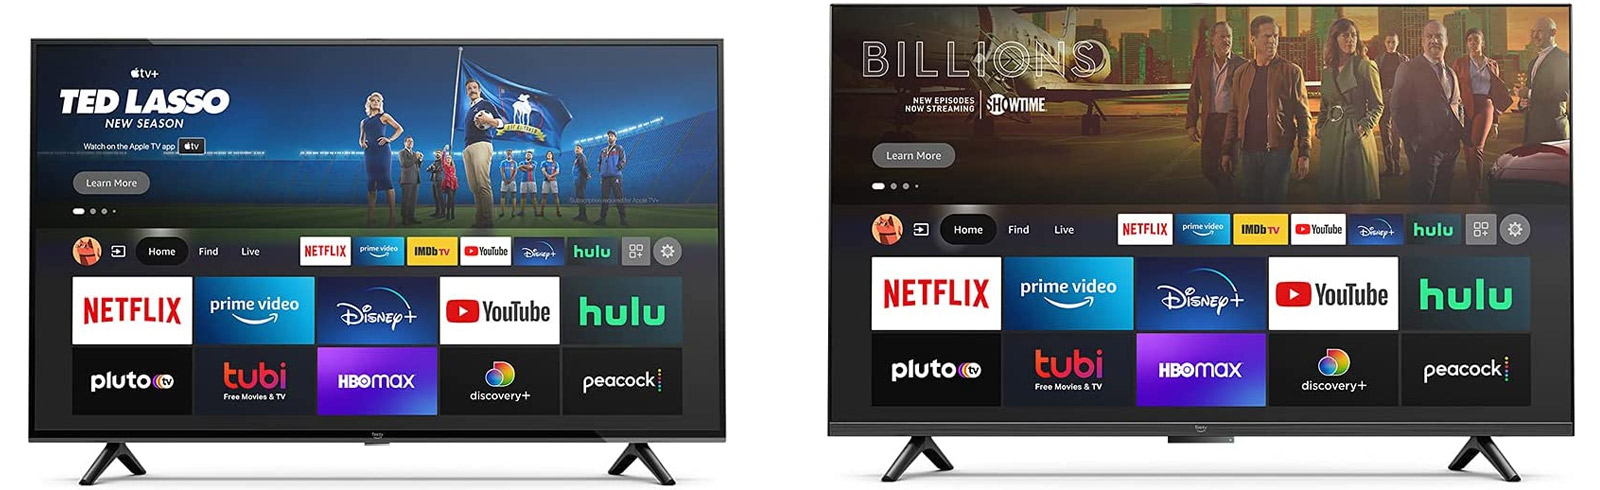 The Amazon Fire TV Omni Series and Fire TV 4-Series are now Amazon-branded